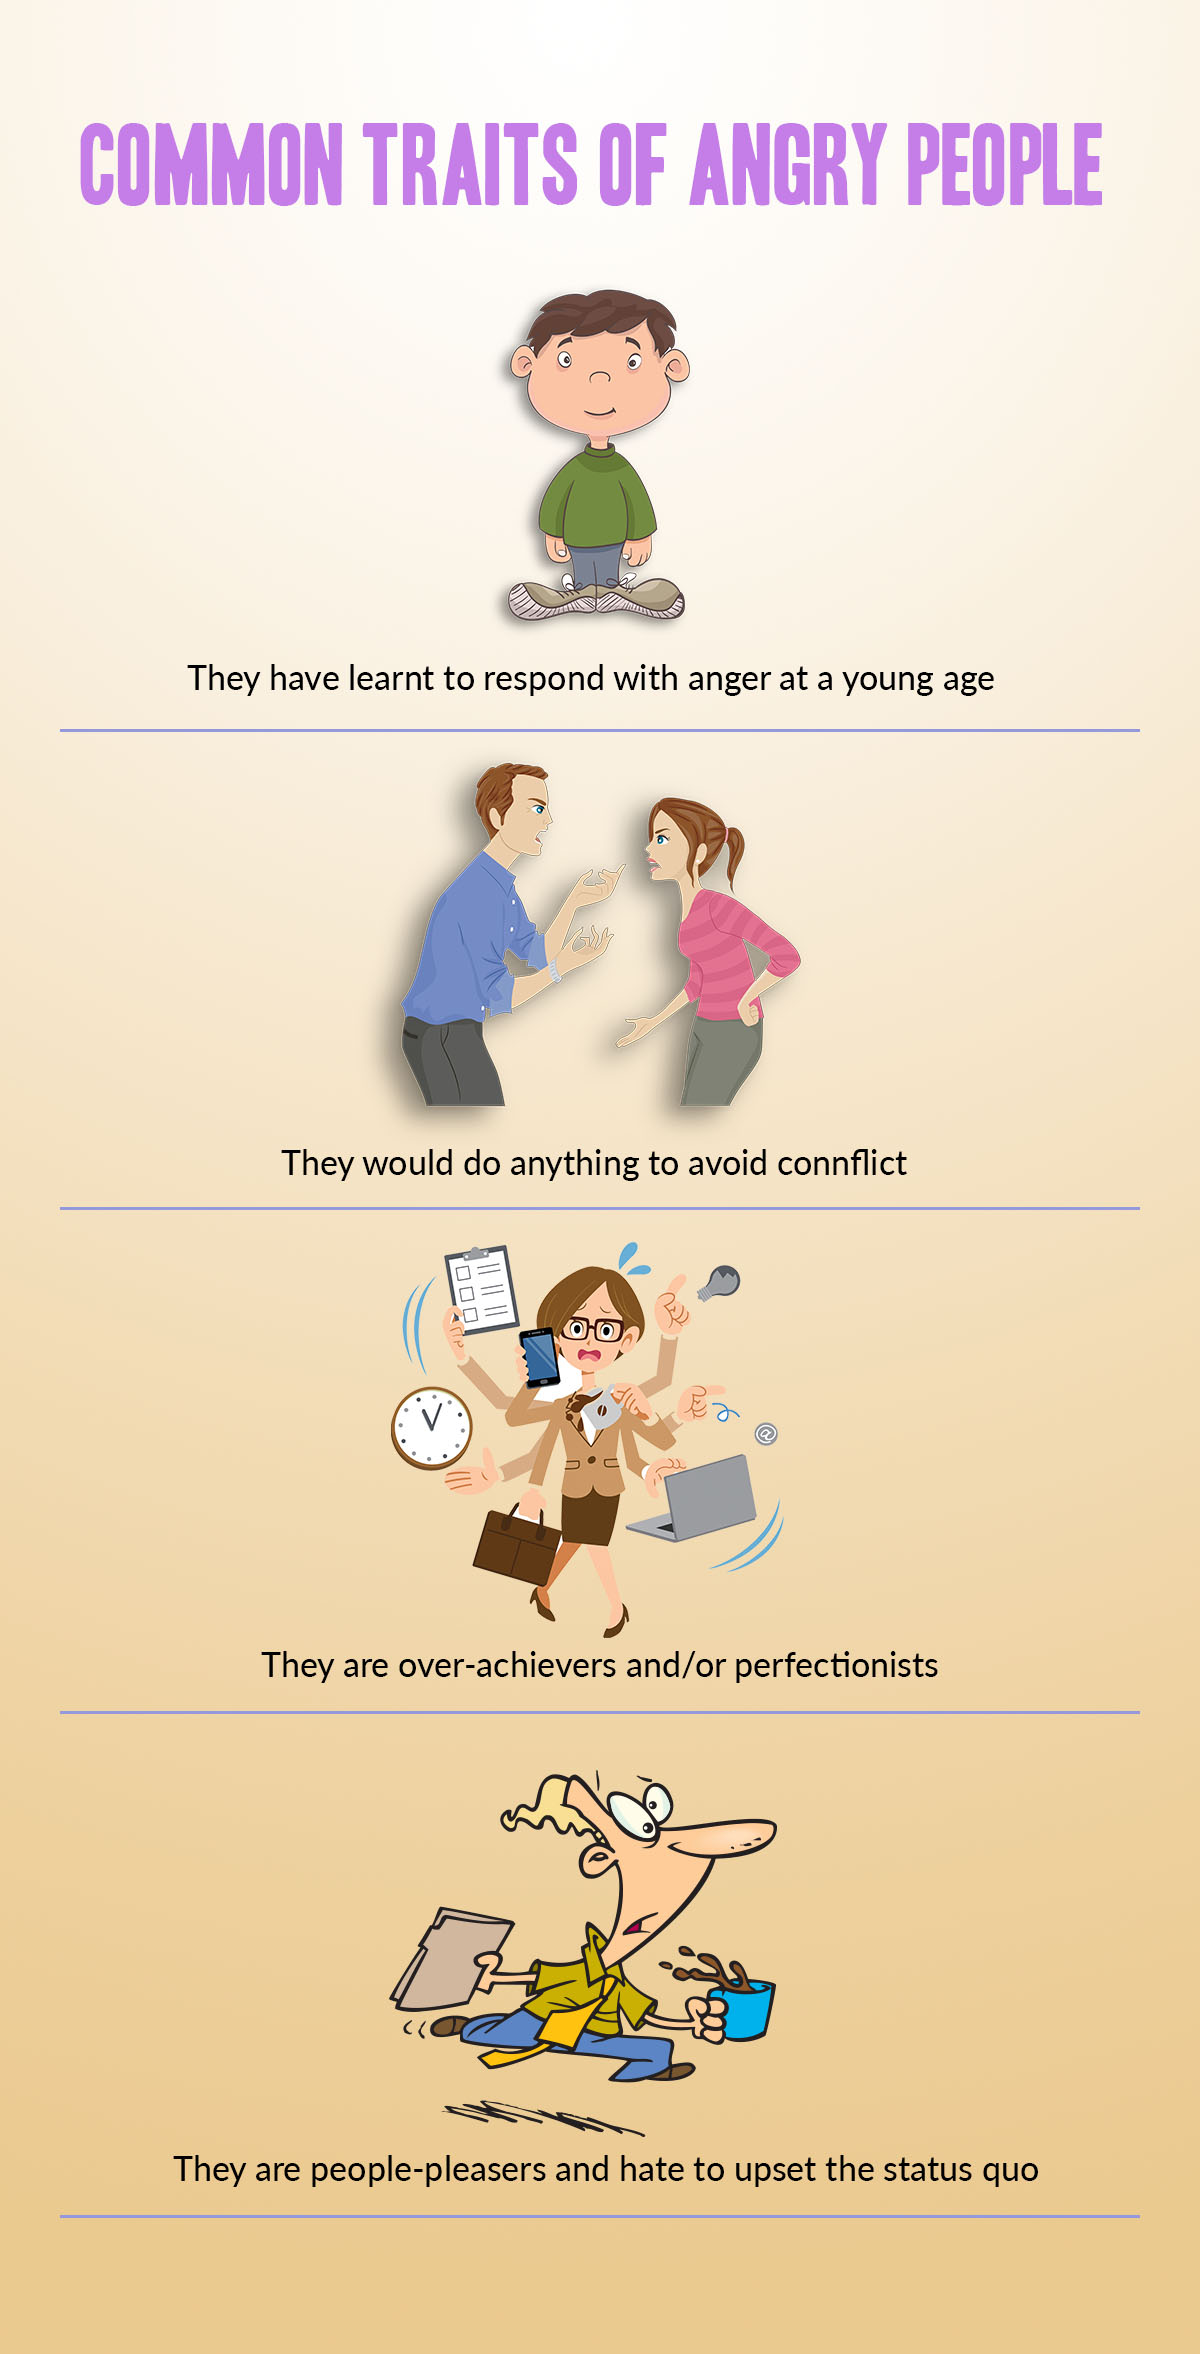 Things that contribute to anger problems